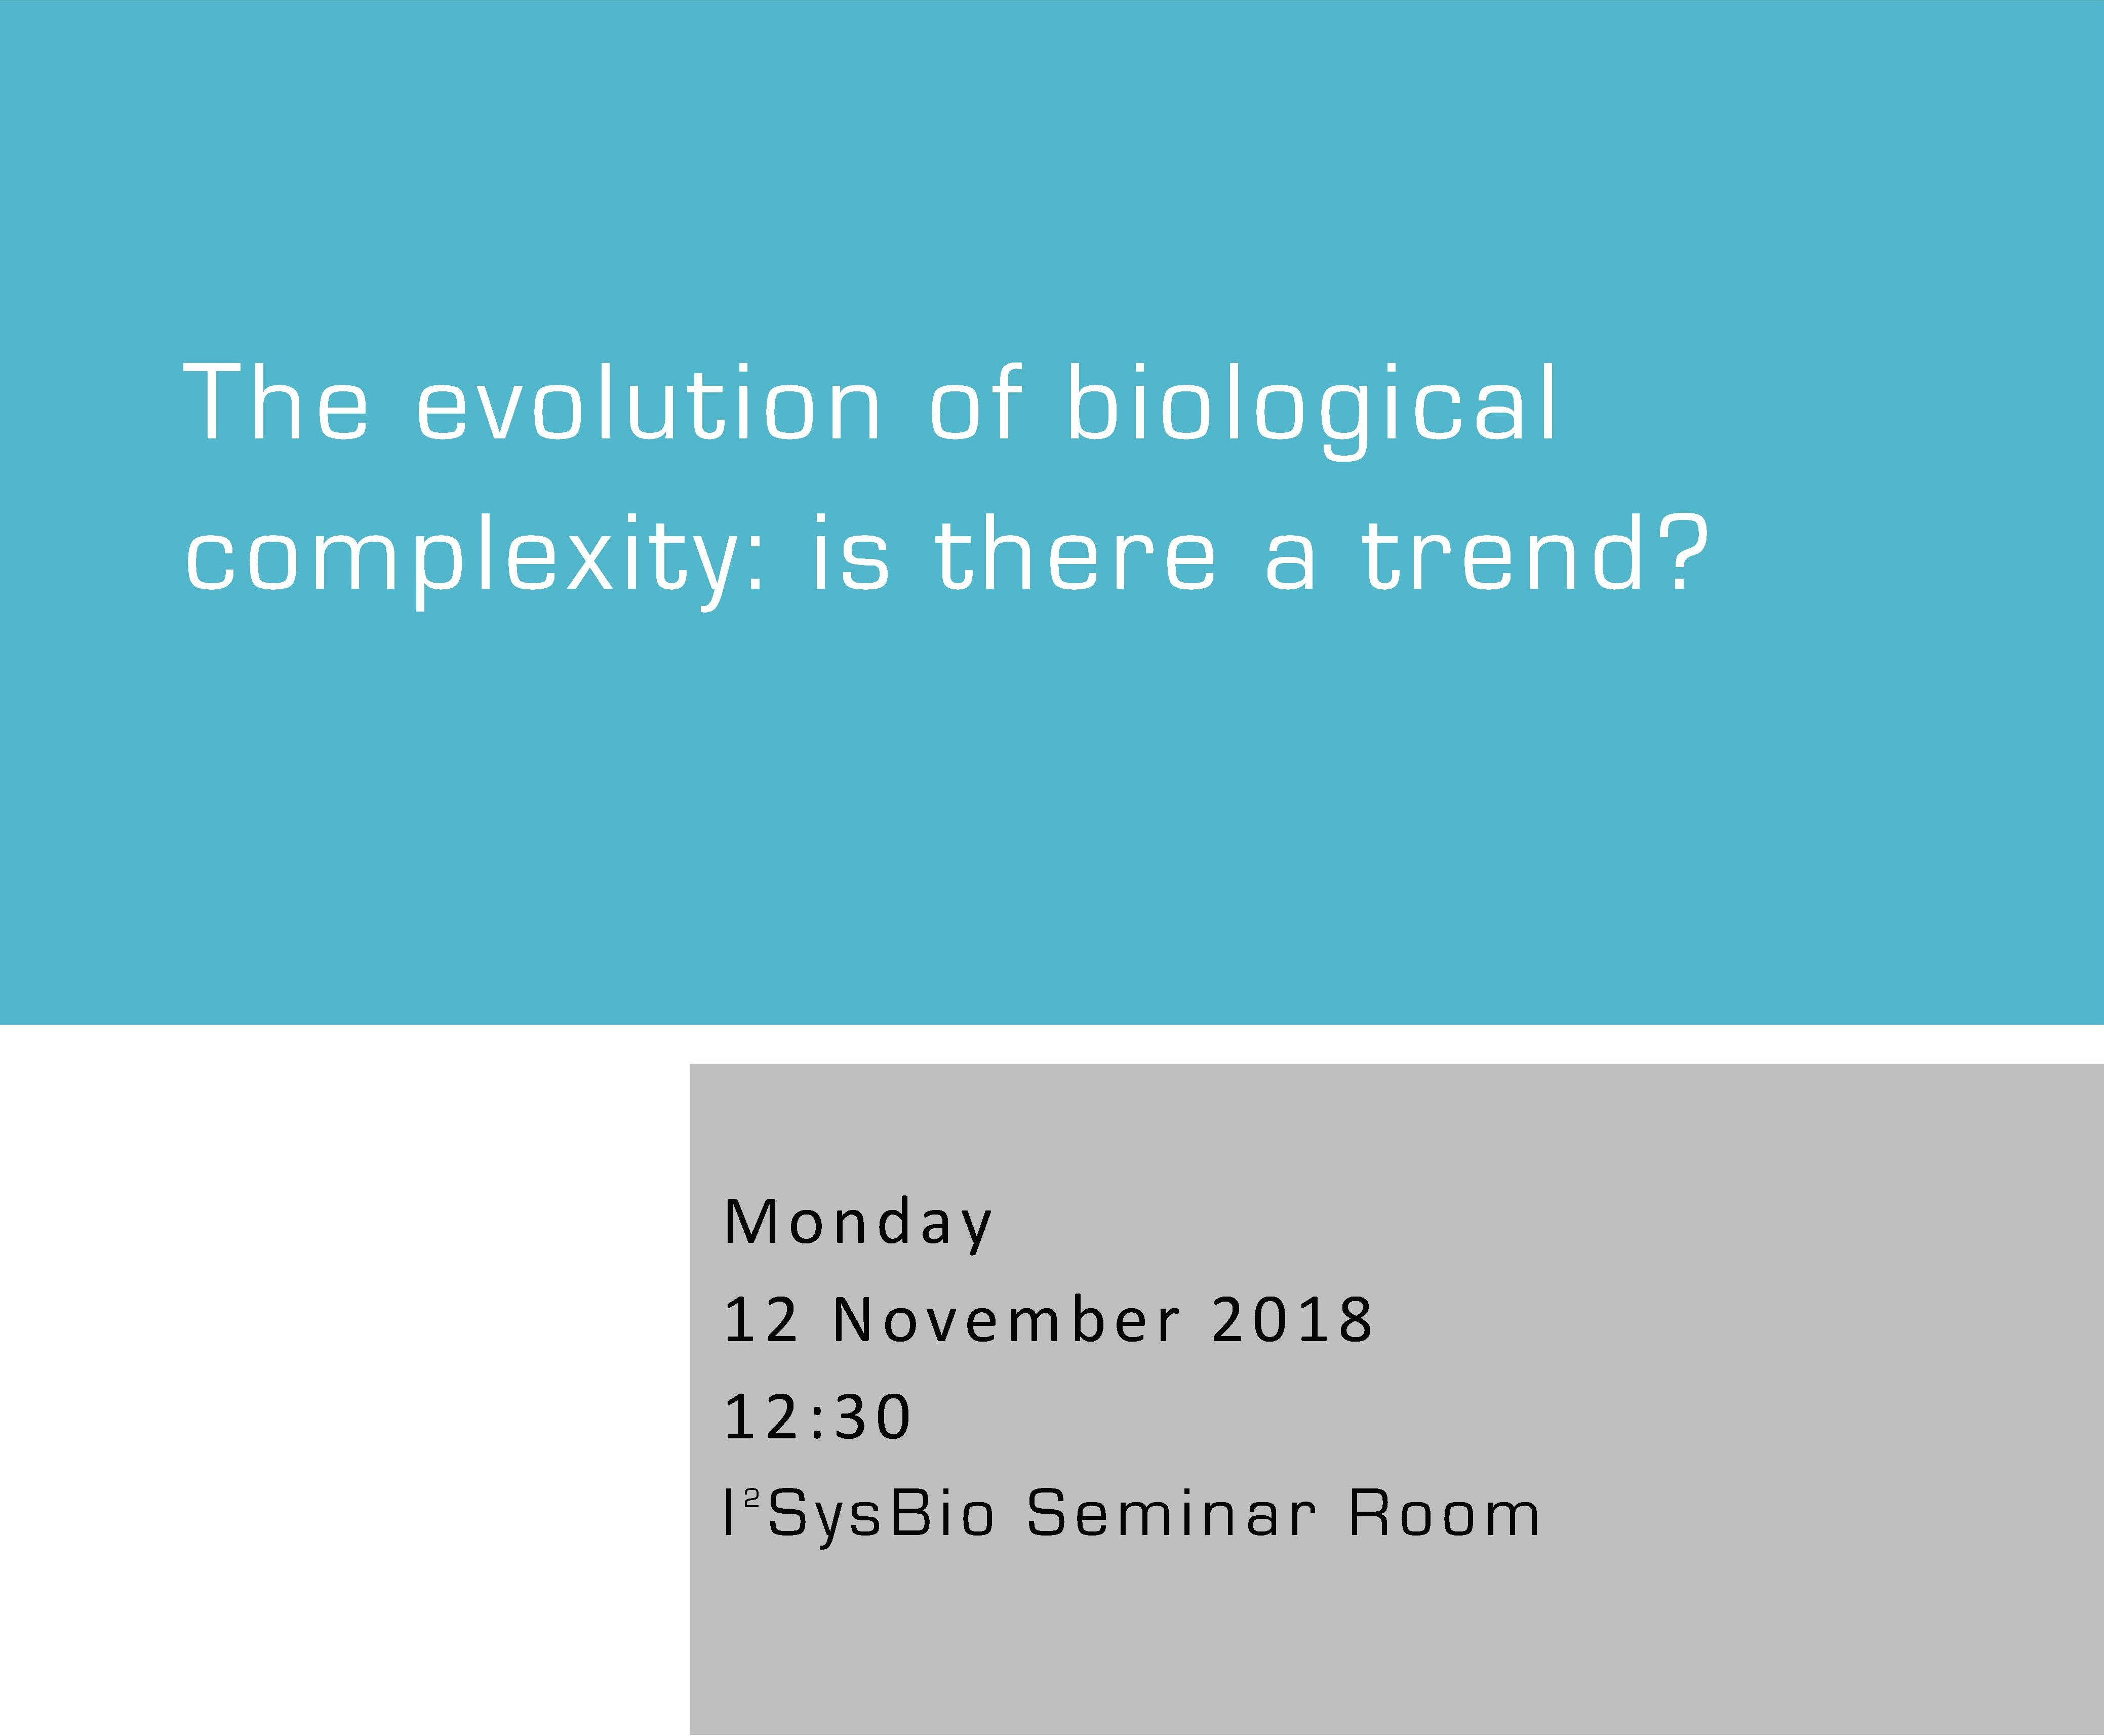 The evolution of biological complexity: is there a trend?